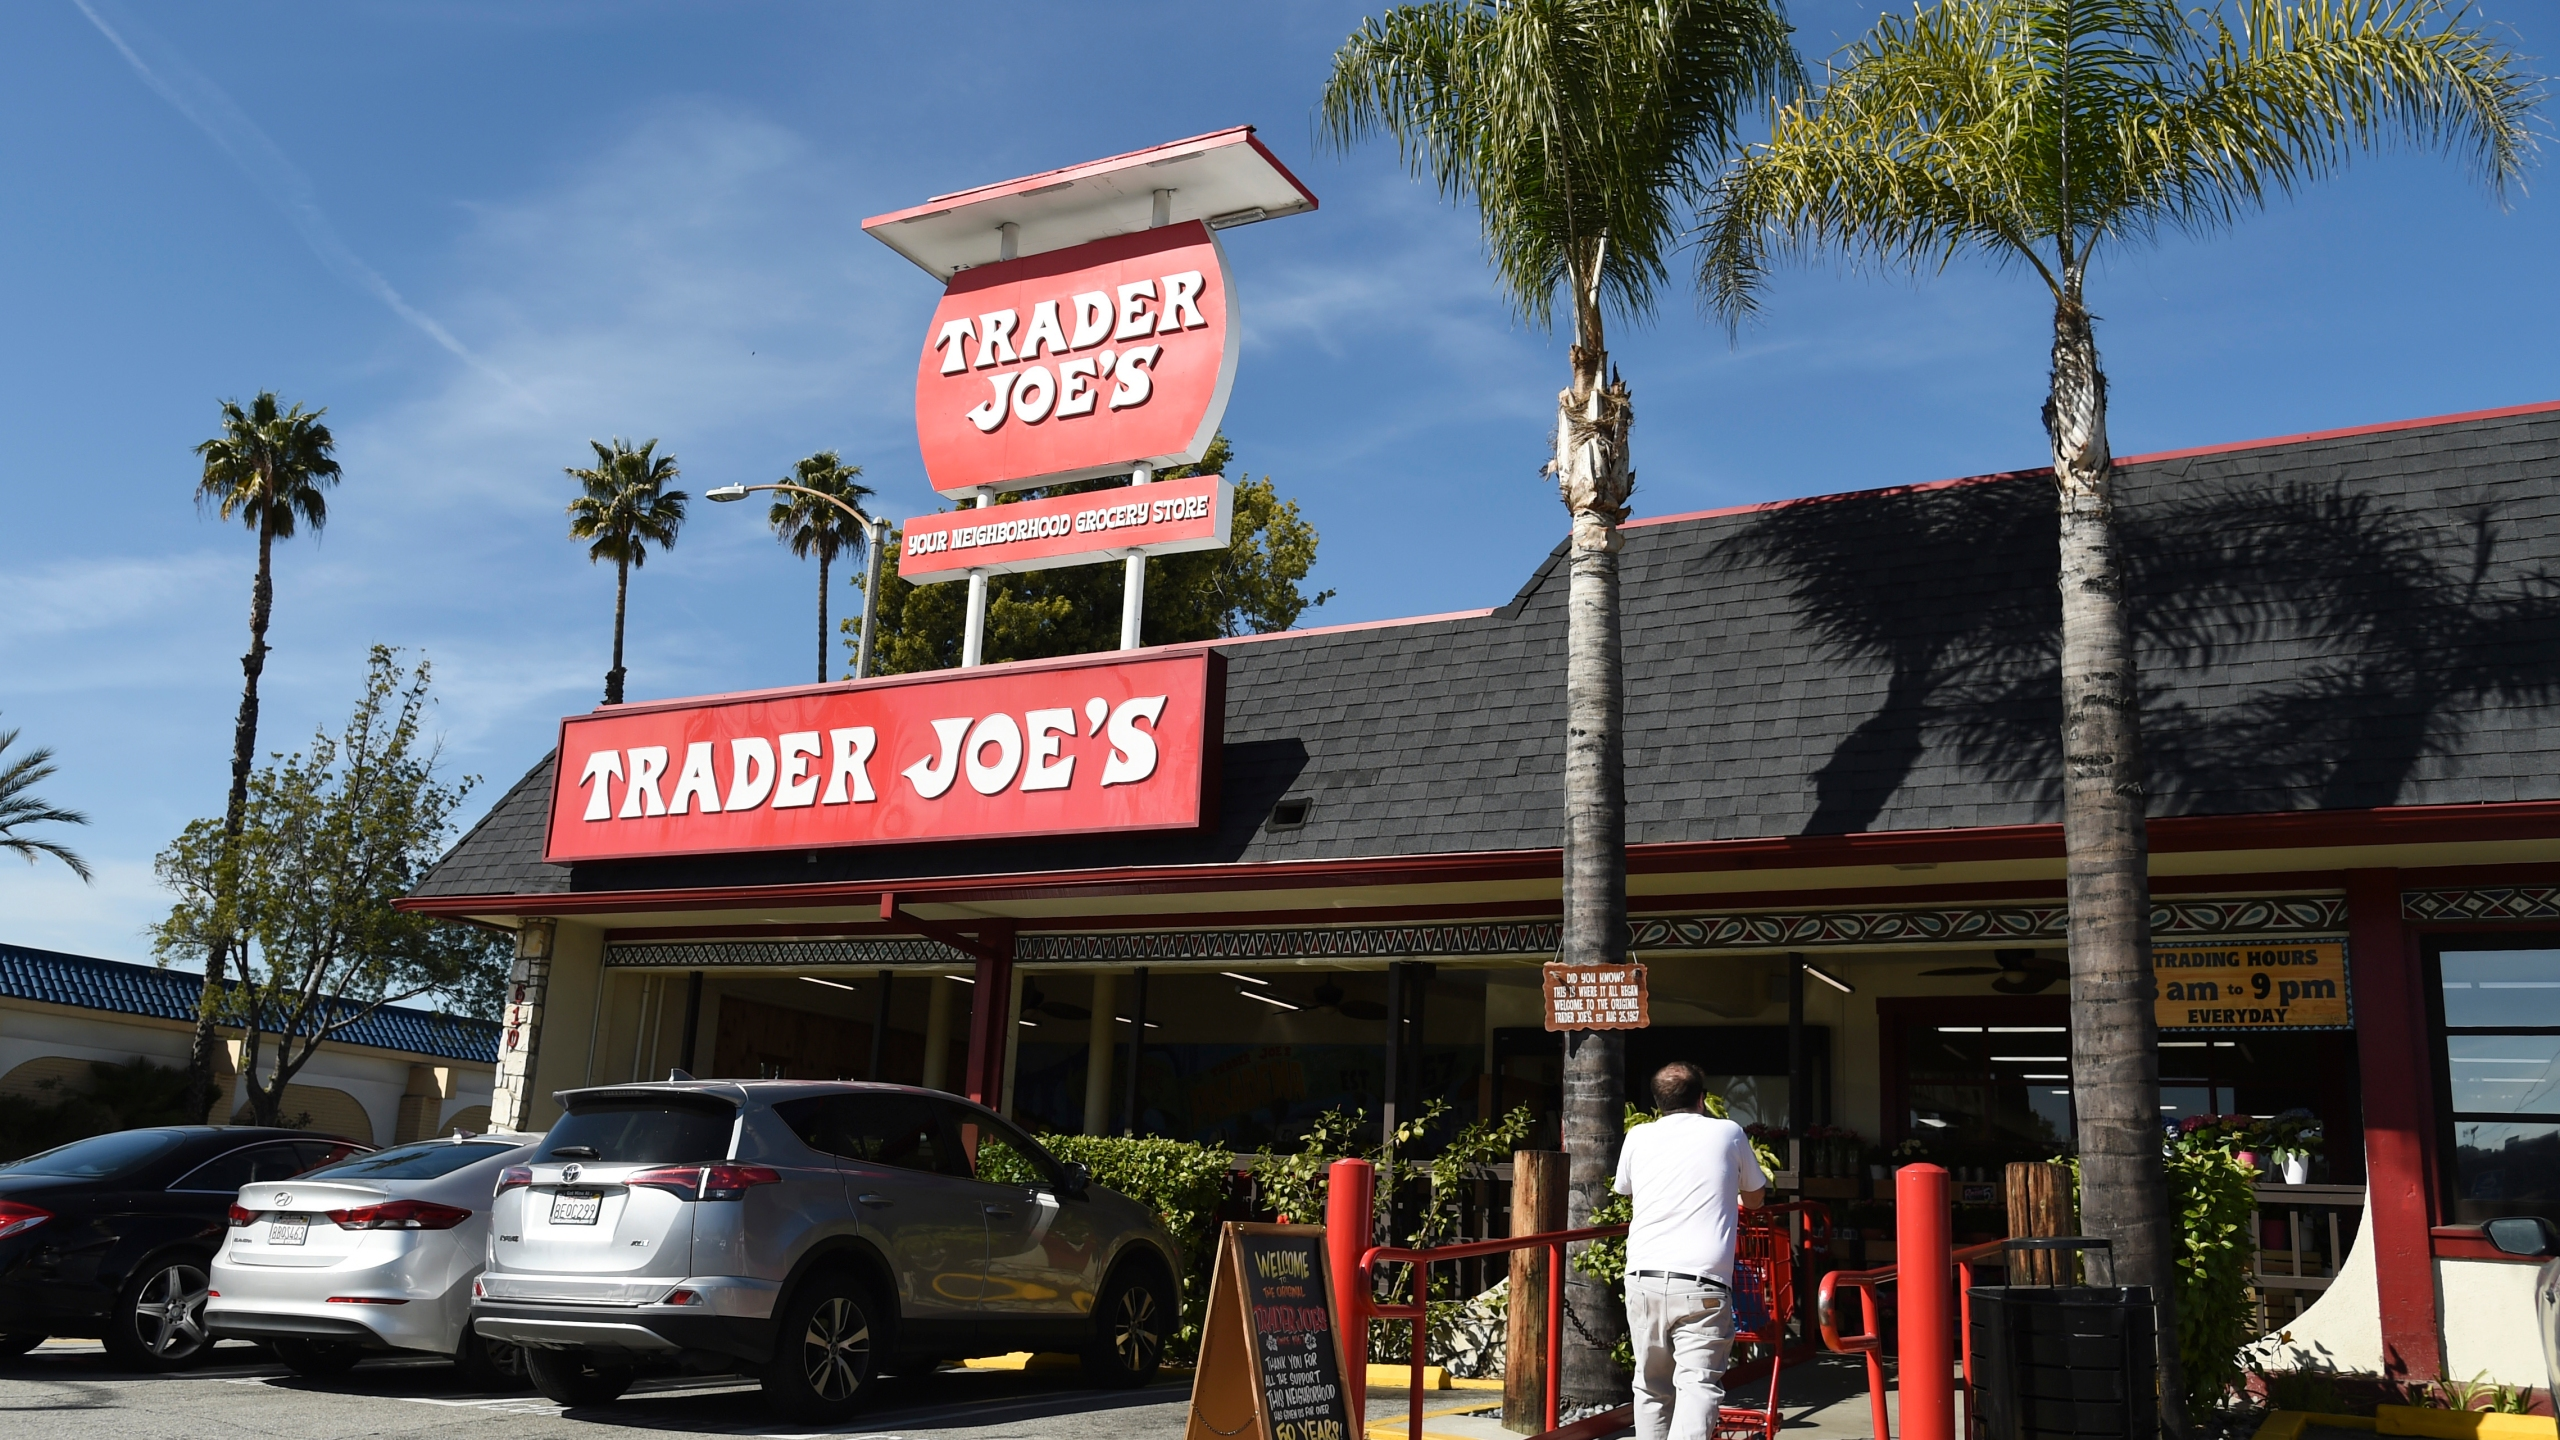 In this Feb. 26, 2020, file photo, the original Trader Joe's grocery store in Pasadena, Calif., is viewed. Responding to calls for Trader Joe's to stop labeling its international food products with ethnic-sounding names, the grocery store chain said it has been in a yearslong process of repackaging those products and will soon complete the work. (AP Photo/Chris Pizzello, File)